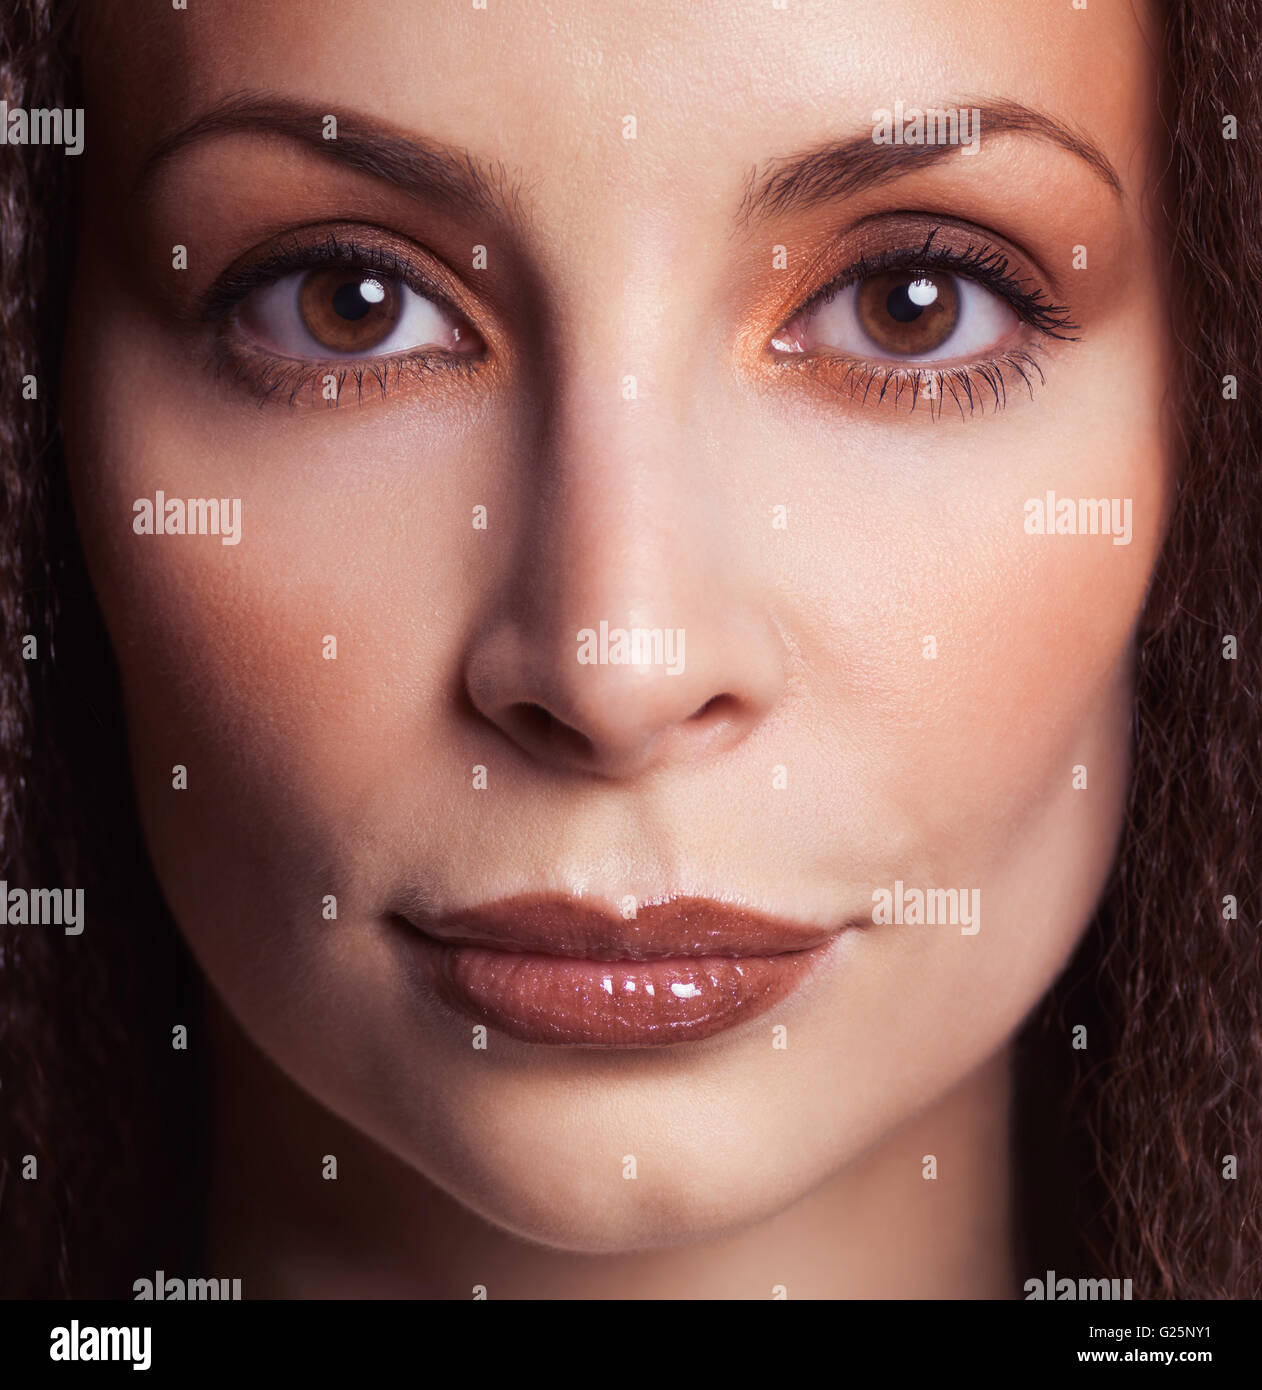 Woman's face wearing makeup - Stock Image